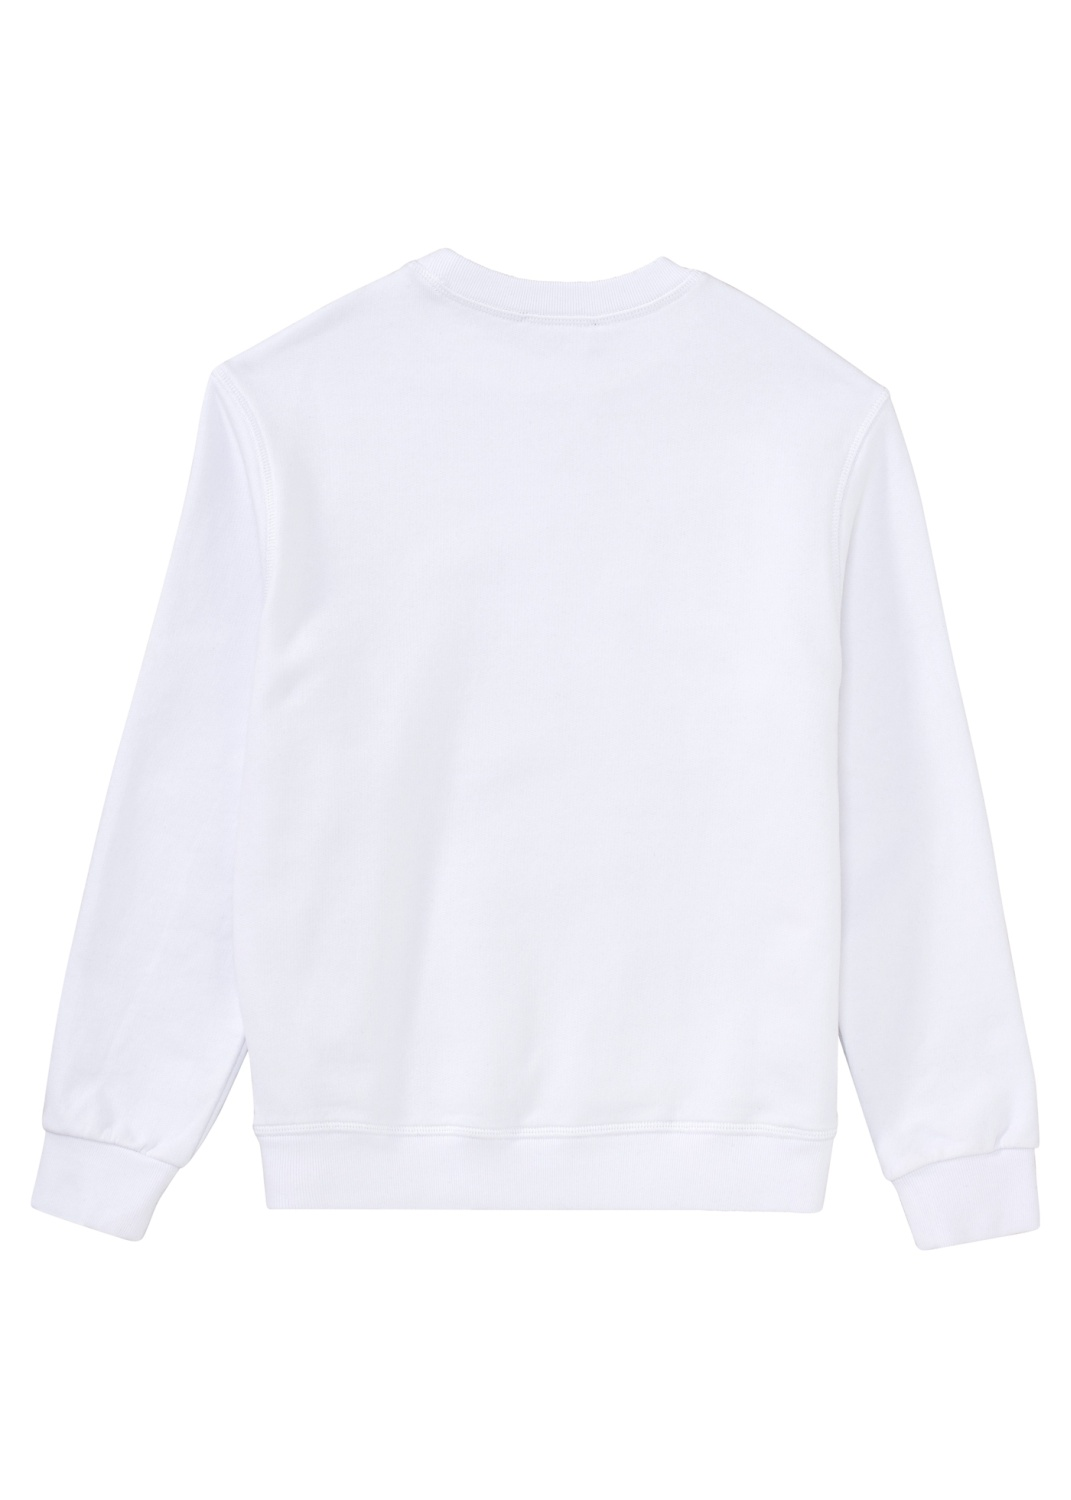 RELAX-ICON SWEAT-SHIRT image number 1